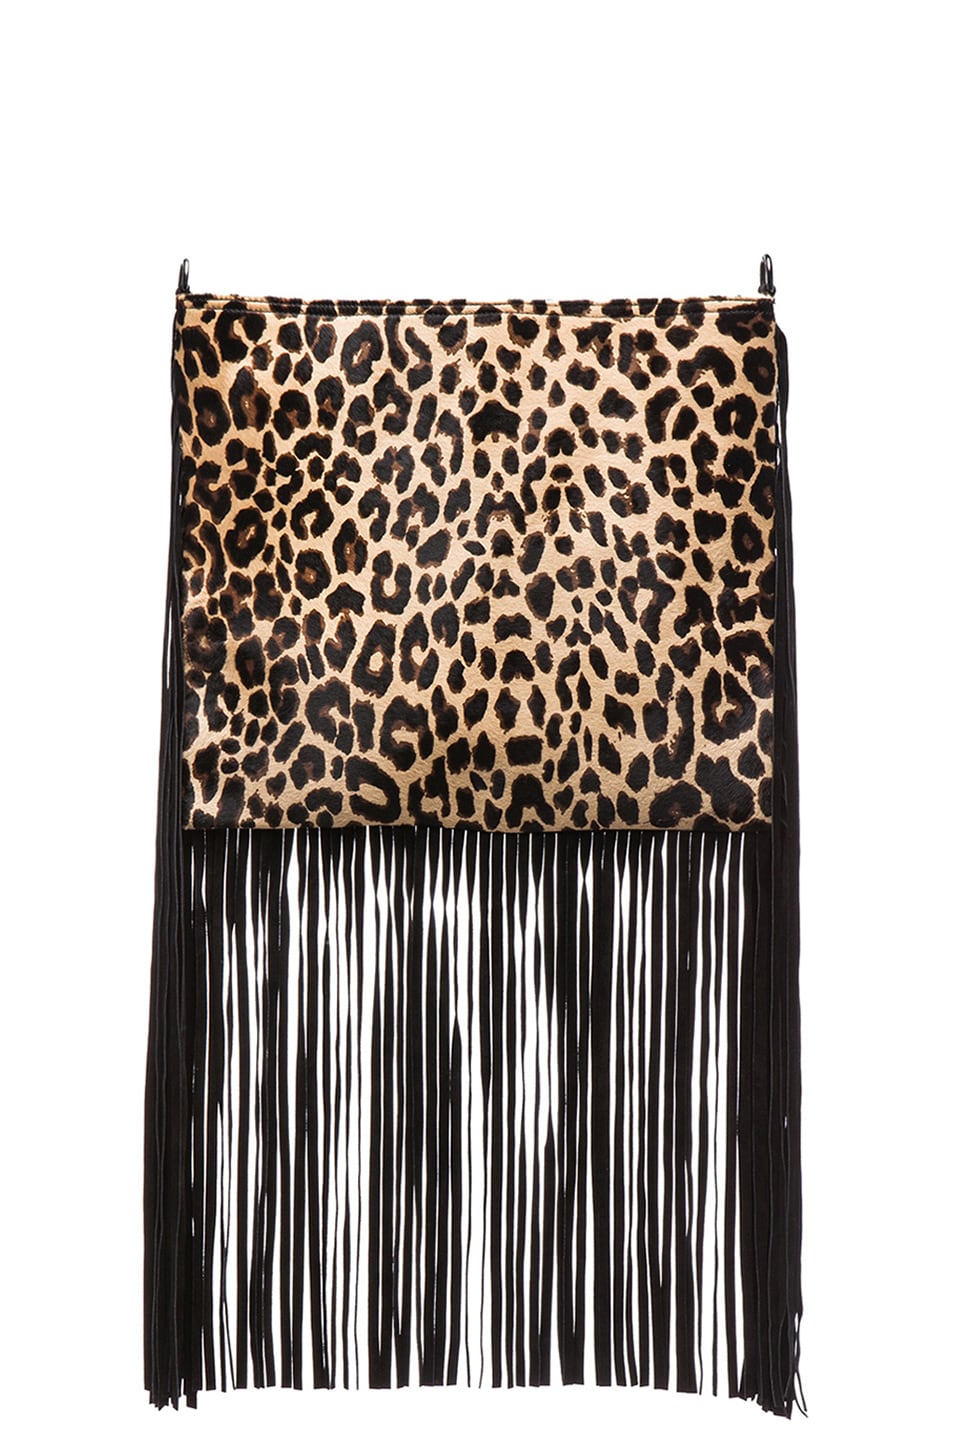 Image 1 Of Theperfext Blair Crossbody Fringe Bag In Leopard Pony